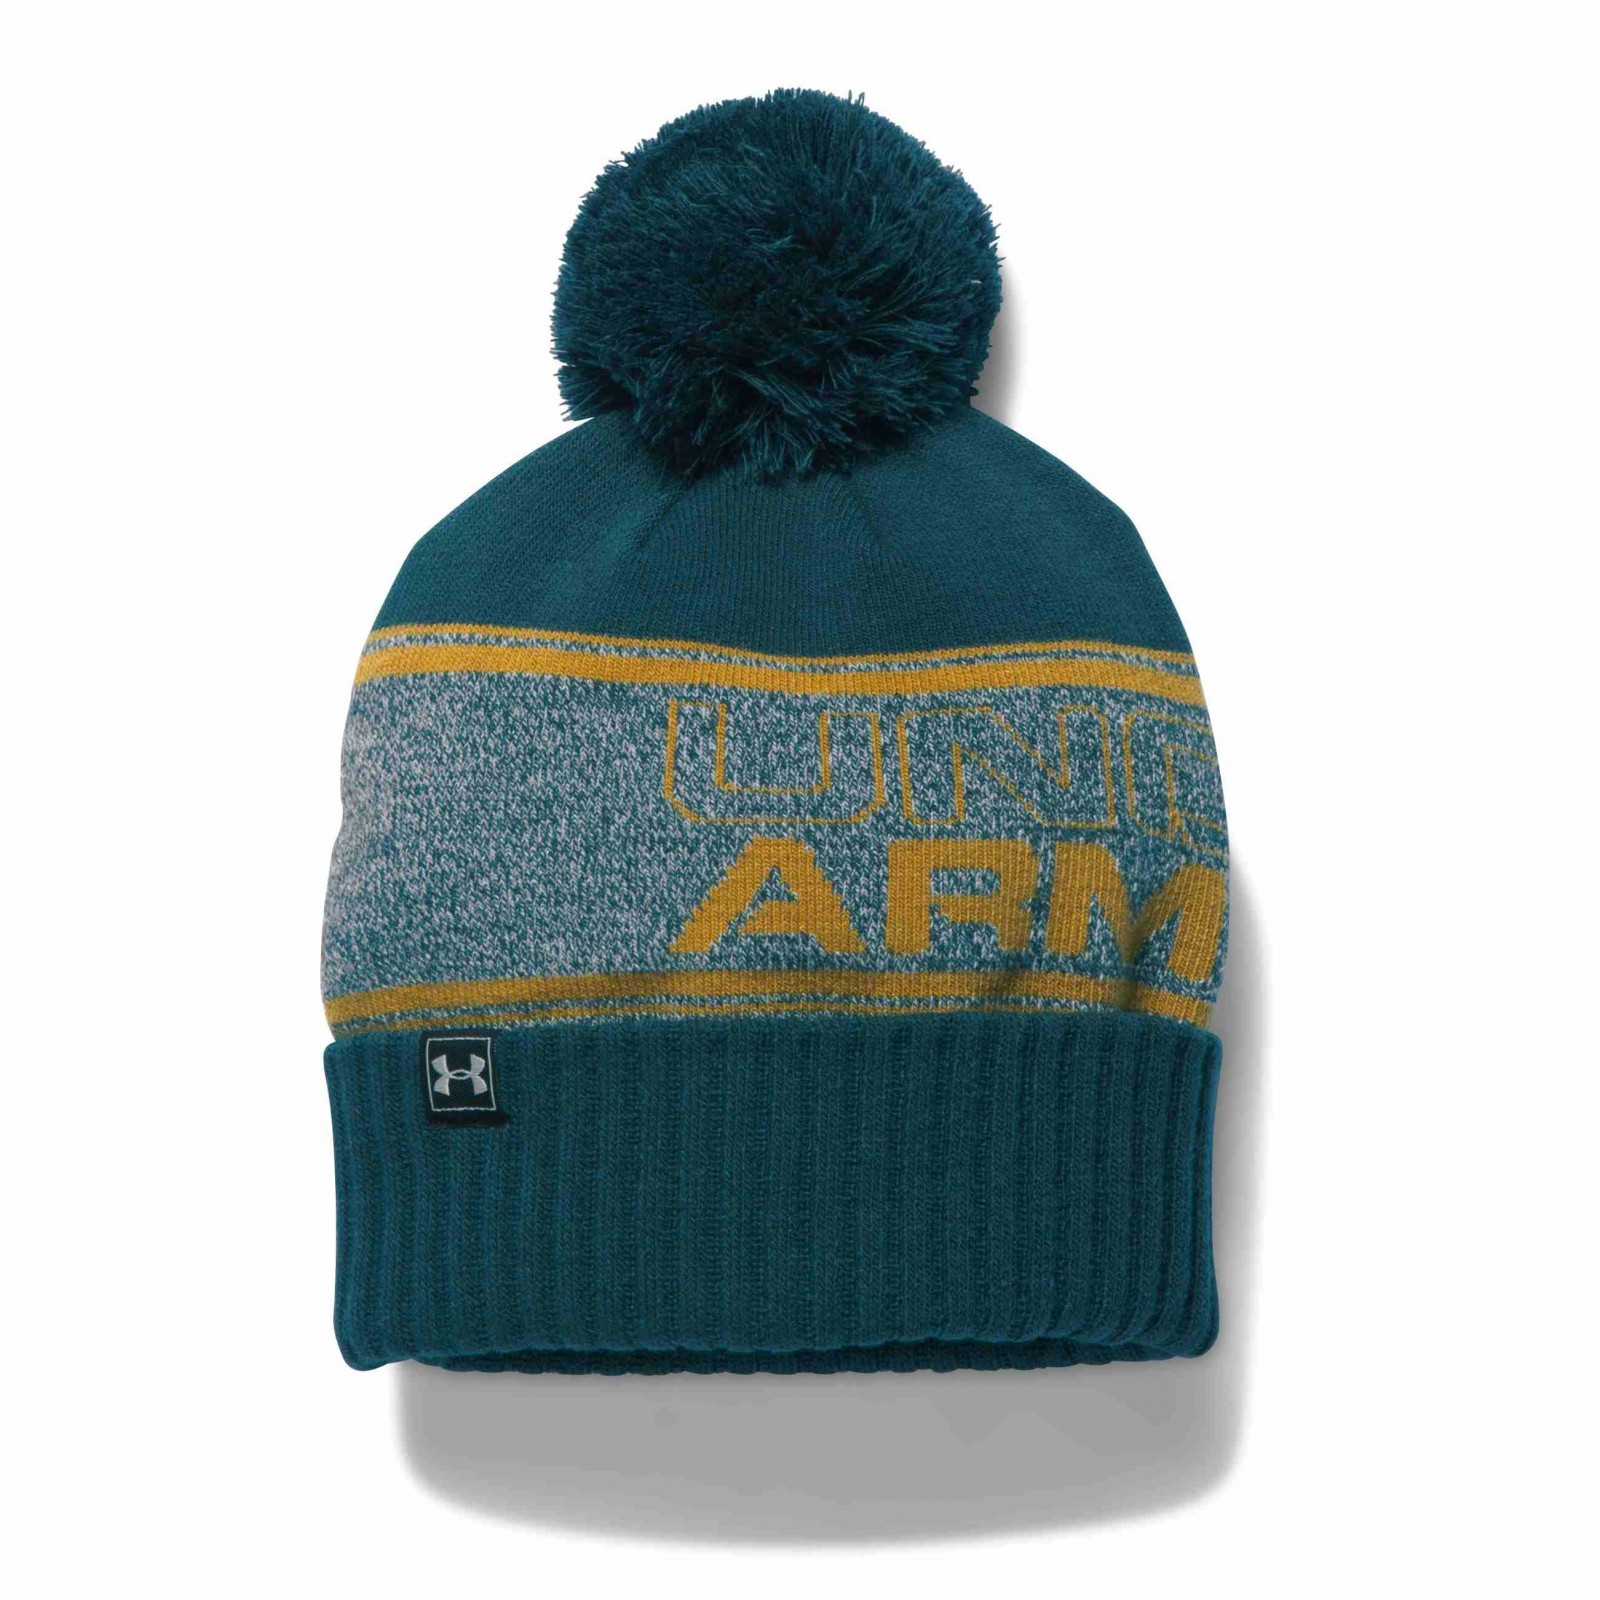 Under Armour Men's Pom Beanie